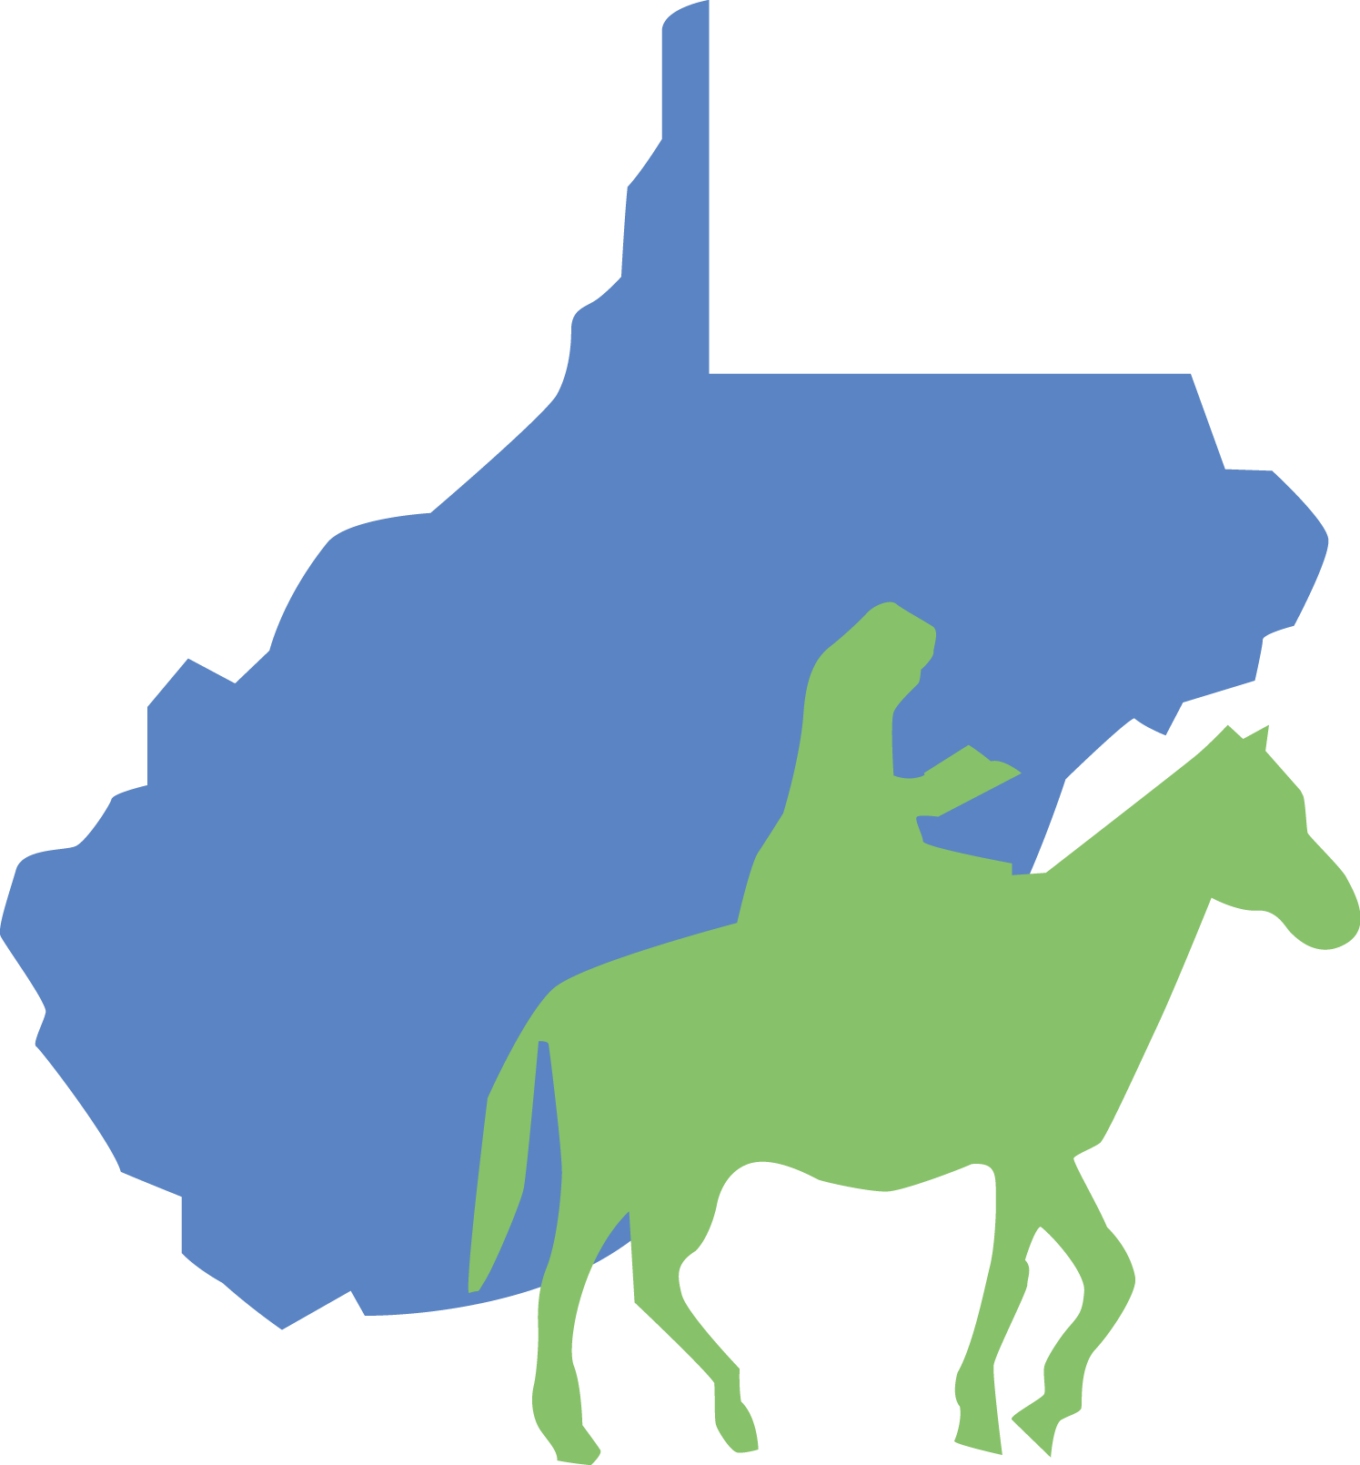 Conference clipart medical conference. West virginia of the